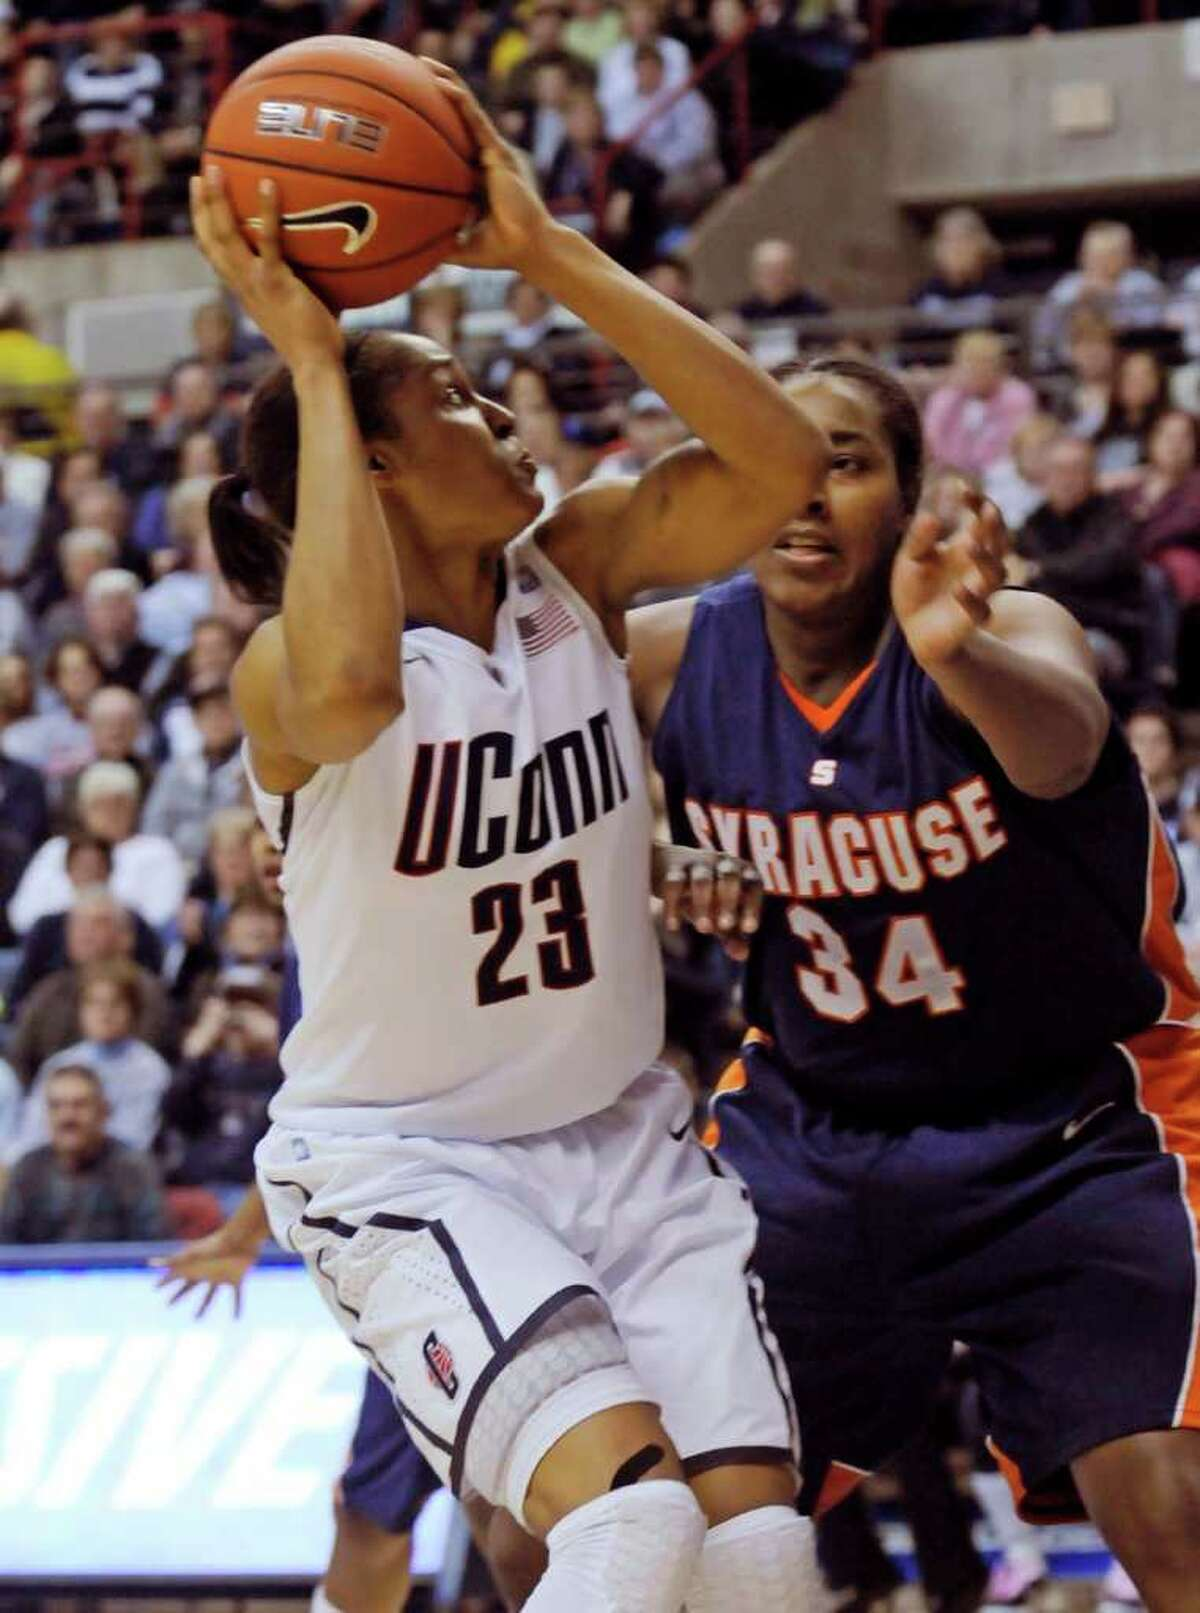 Connecticut's Maya Moore gets set to shoot as Syracuse's Shakeya Leary defends during the first half of an NCAA college basketball game in Storrs, Conn., Monday, Feb. 28, 2011. (AP Photo/Bob Child)